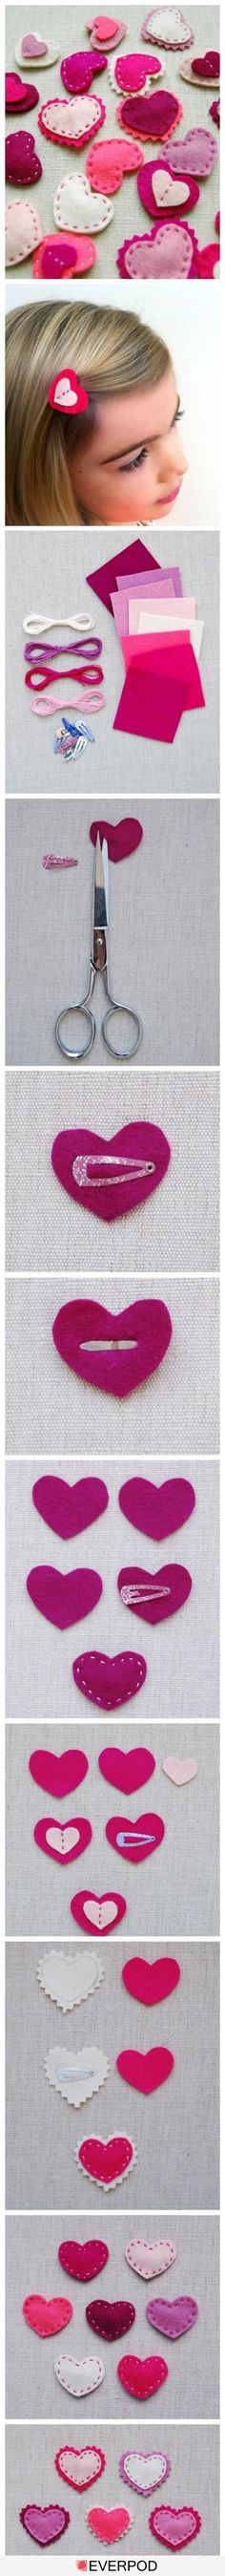 Felt heart hair clip - easy DIY